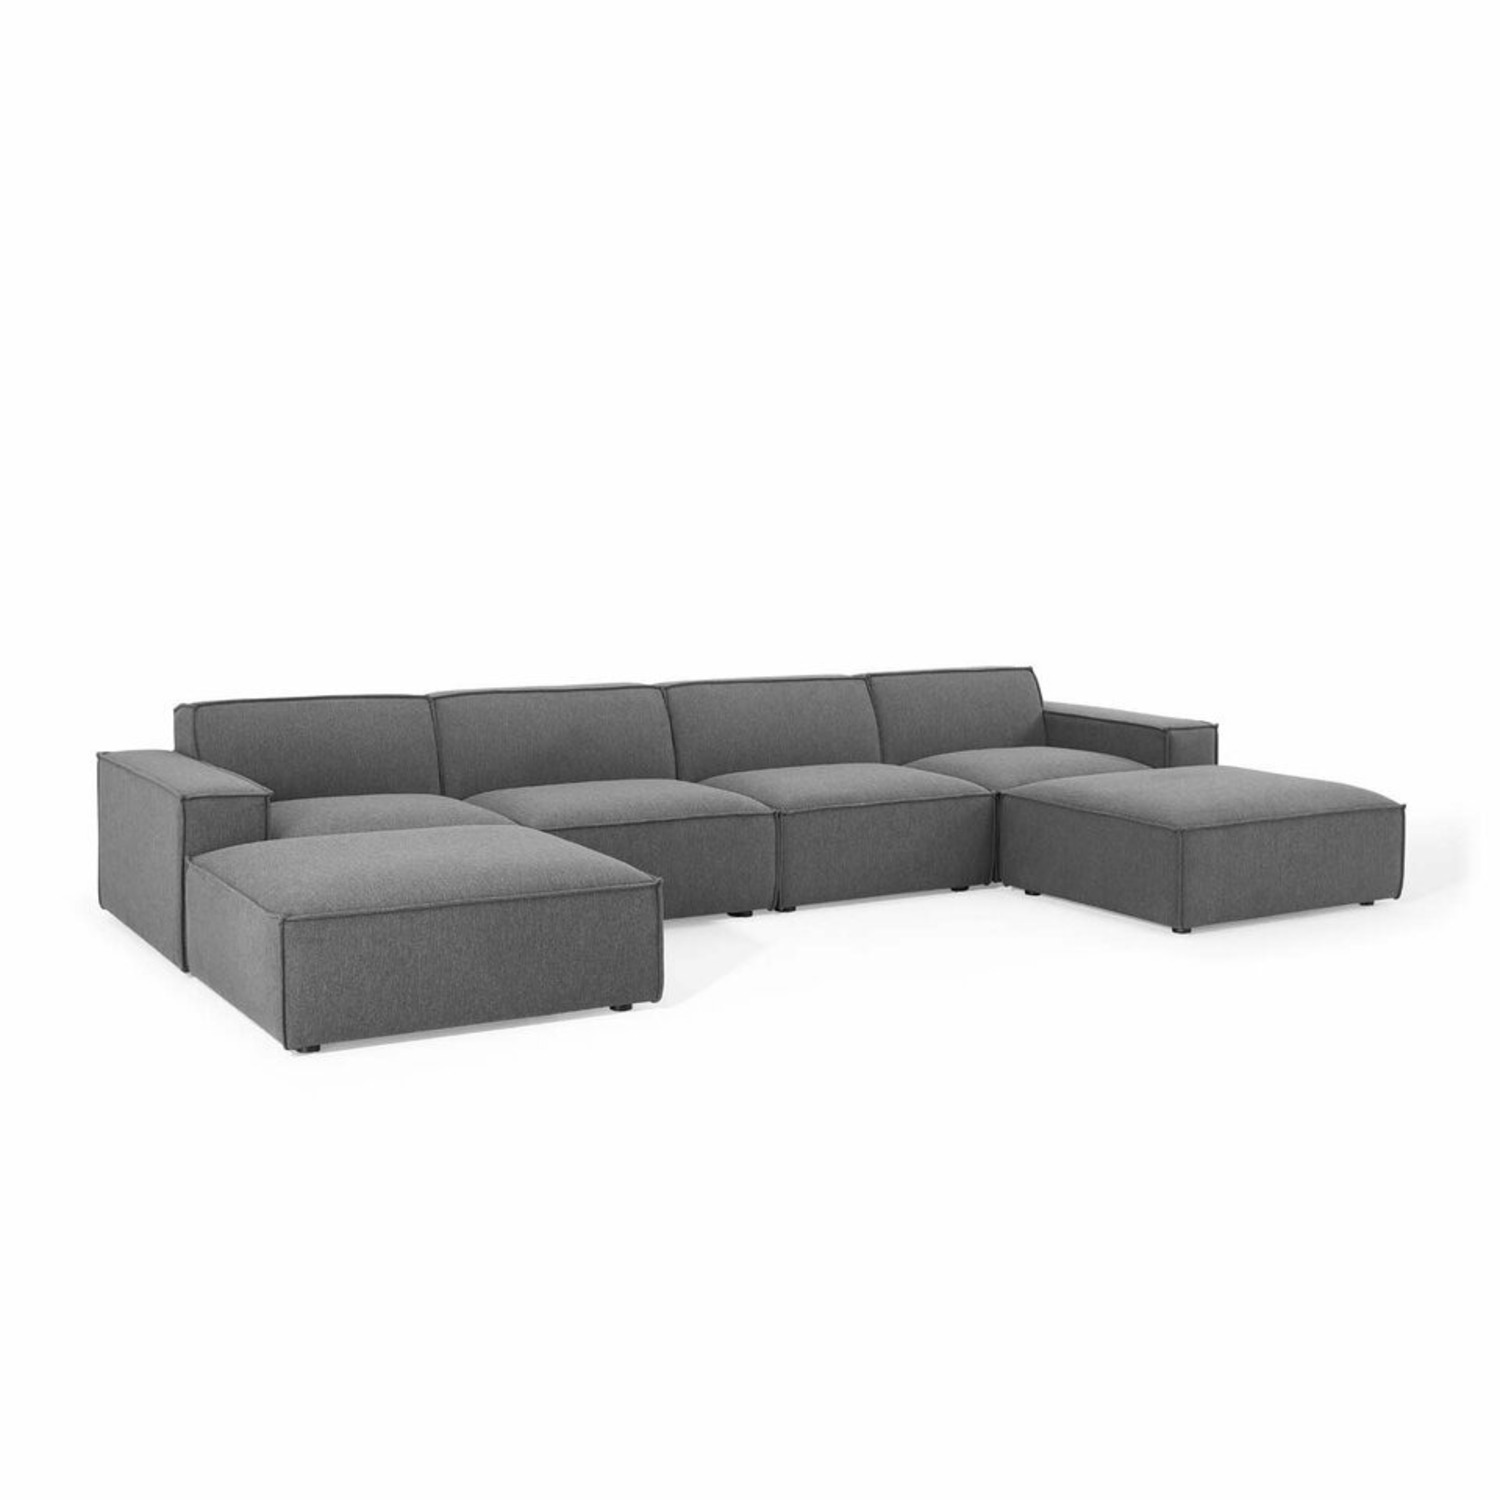 6-Piece Sectional Sofa In Charcoal Upholstery - image-0